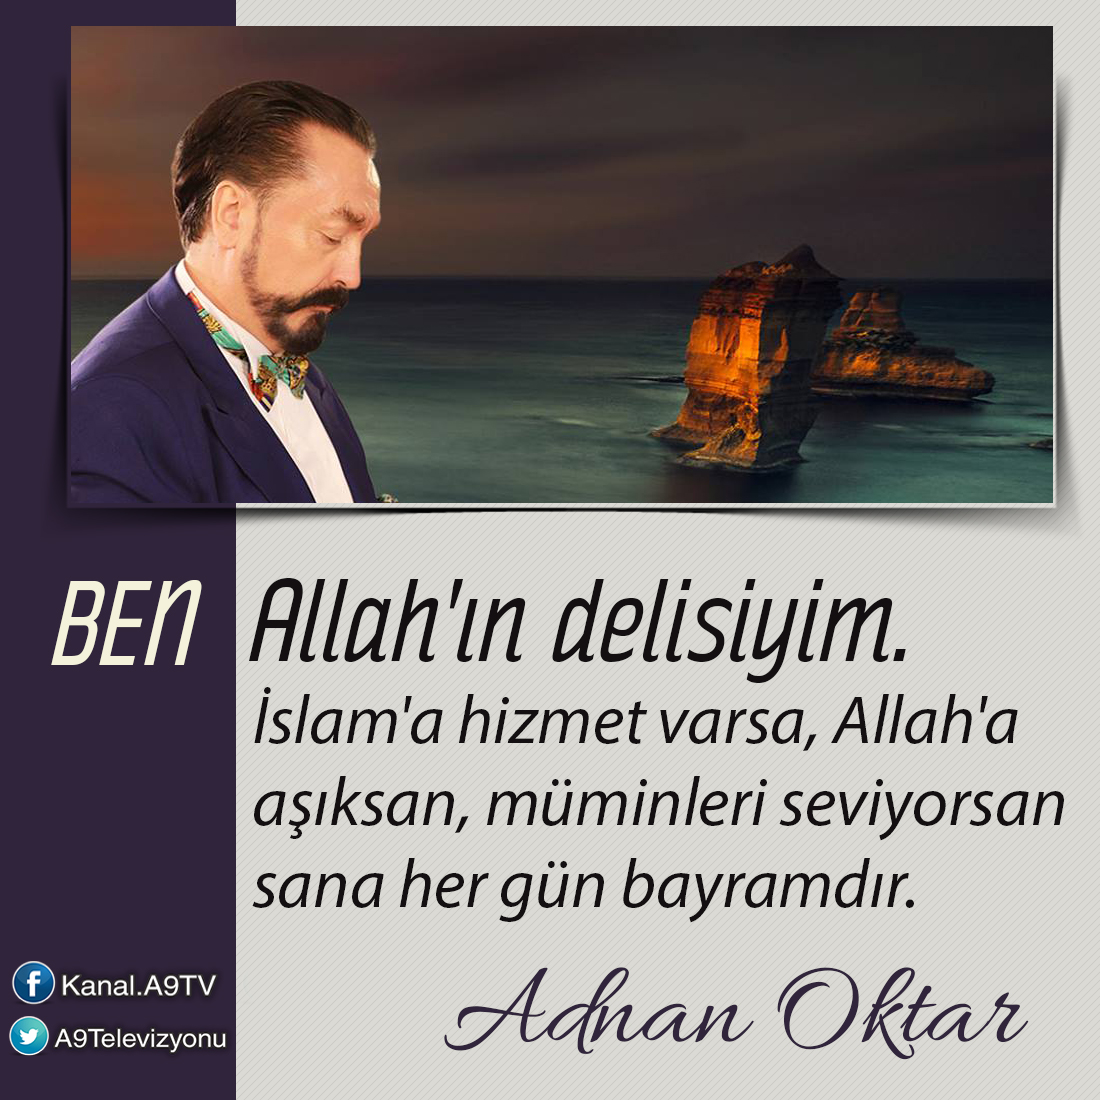 """<table style=""""width: 100%;""""><tr><td style=""""vertical-align: middle;"""">Ben Allah""""ın delisiyim. İslam""""a hizmet varsa, Allah""""a aşıksan, müminleri seviyorsan sana her gün bayramdır.</td><td style=""""max-width: 70px;vertical-align: middle;""""> <a href=""""/downloadquote.php?filename=1500740016621.jpg""""><img class=""""hoversaturate"""" height=""""20px"""" src=""""/assets/images/download-iconu.png"""" style=""""width: 48px; height: 48px;"""" title=""""Resmi İndir""""/></a></td></tr></table>"""